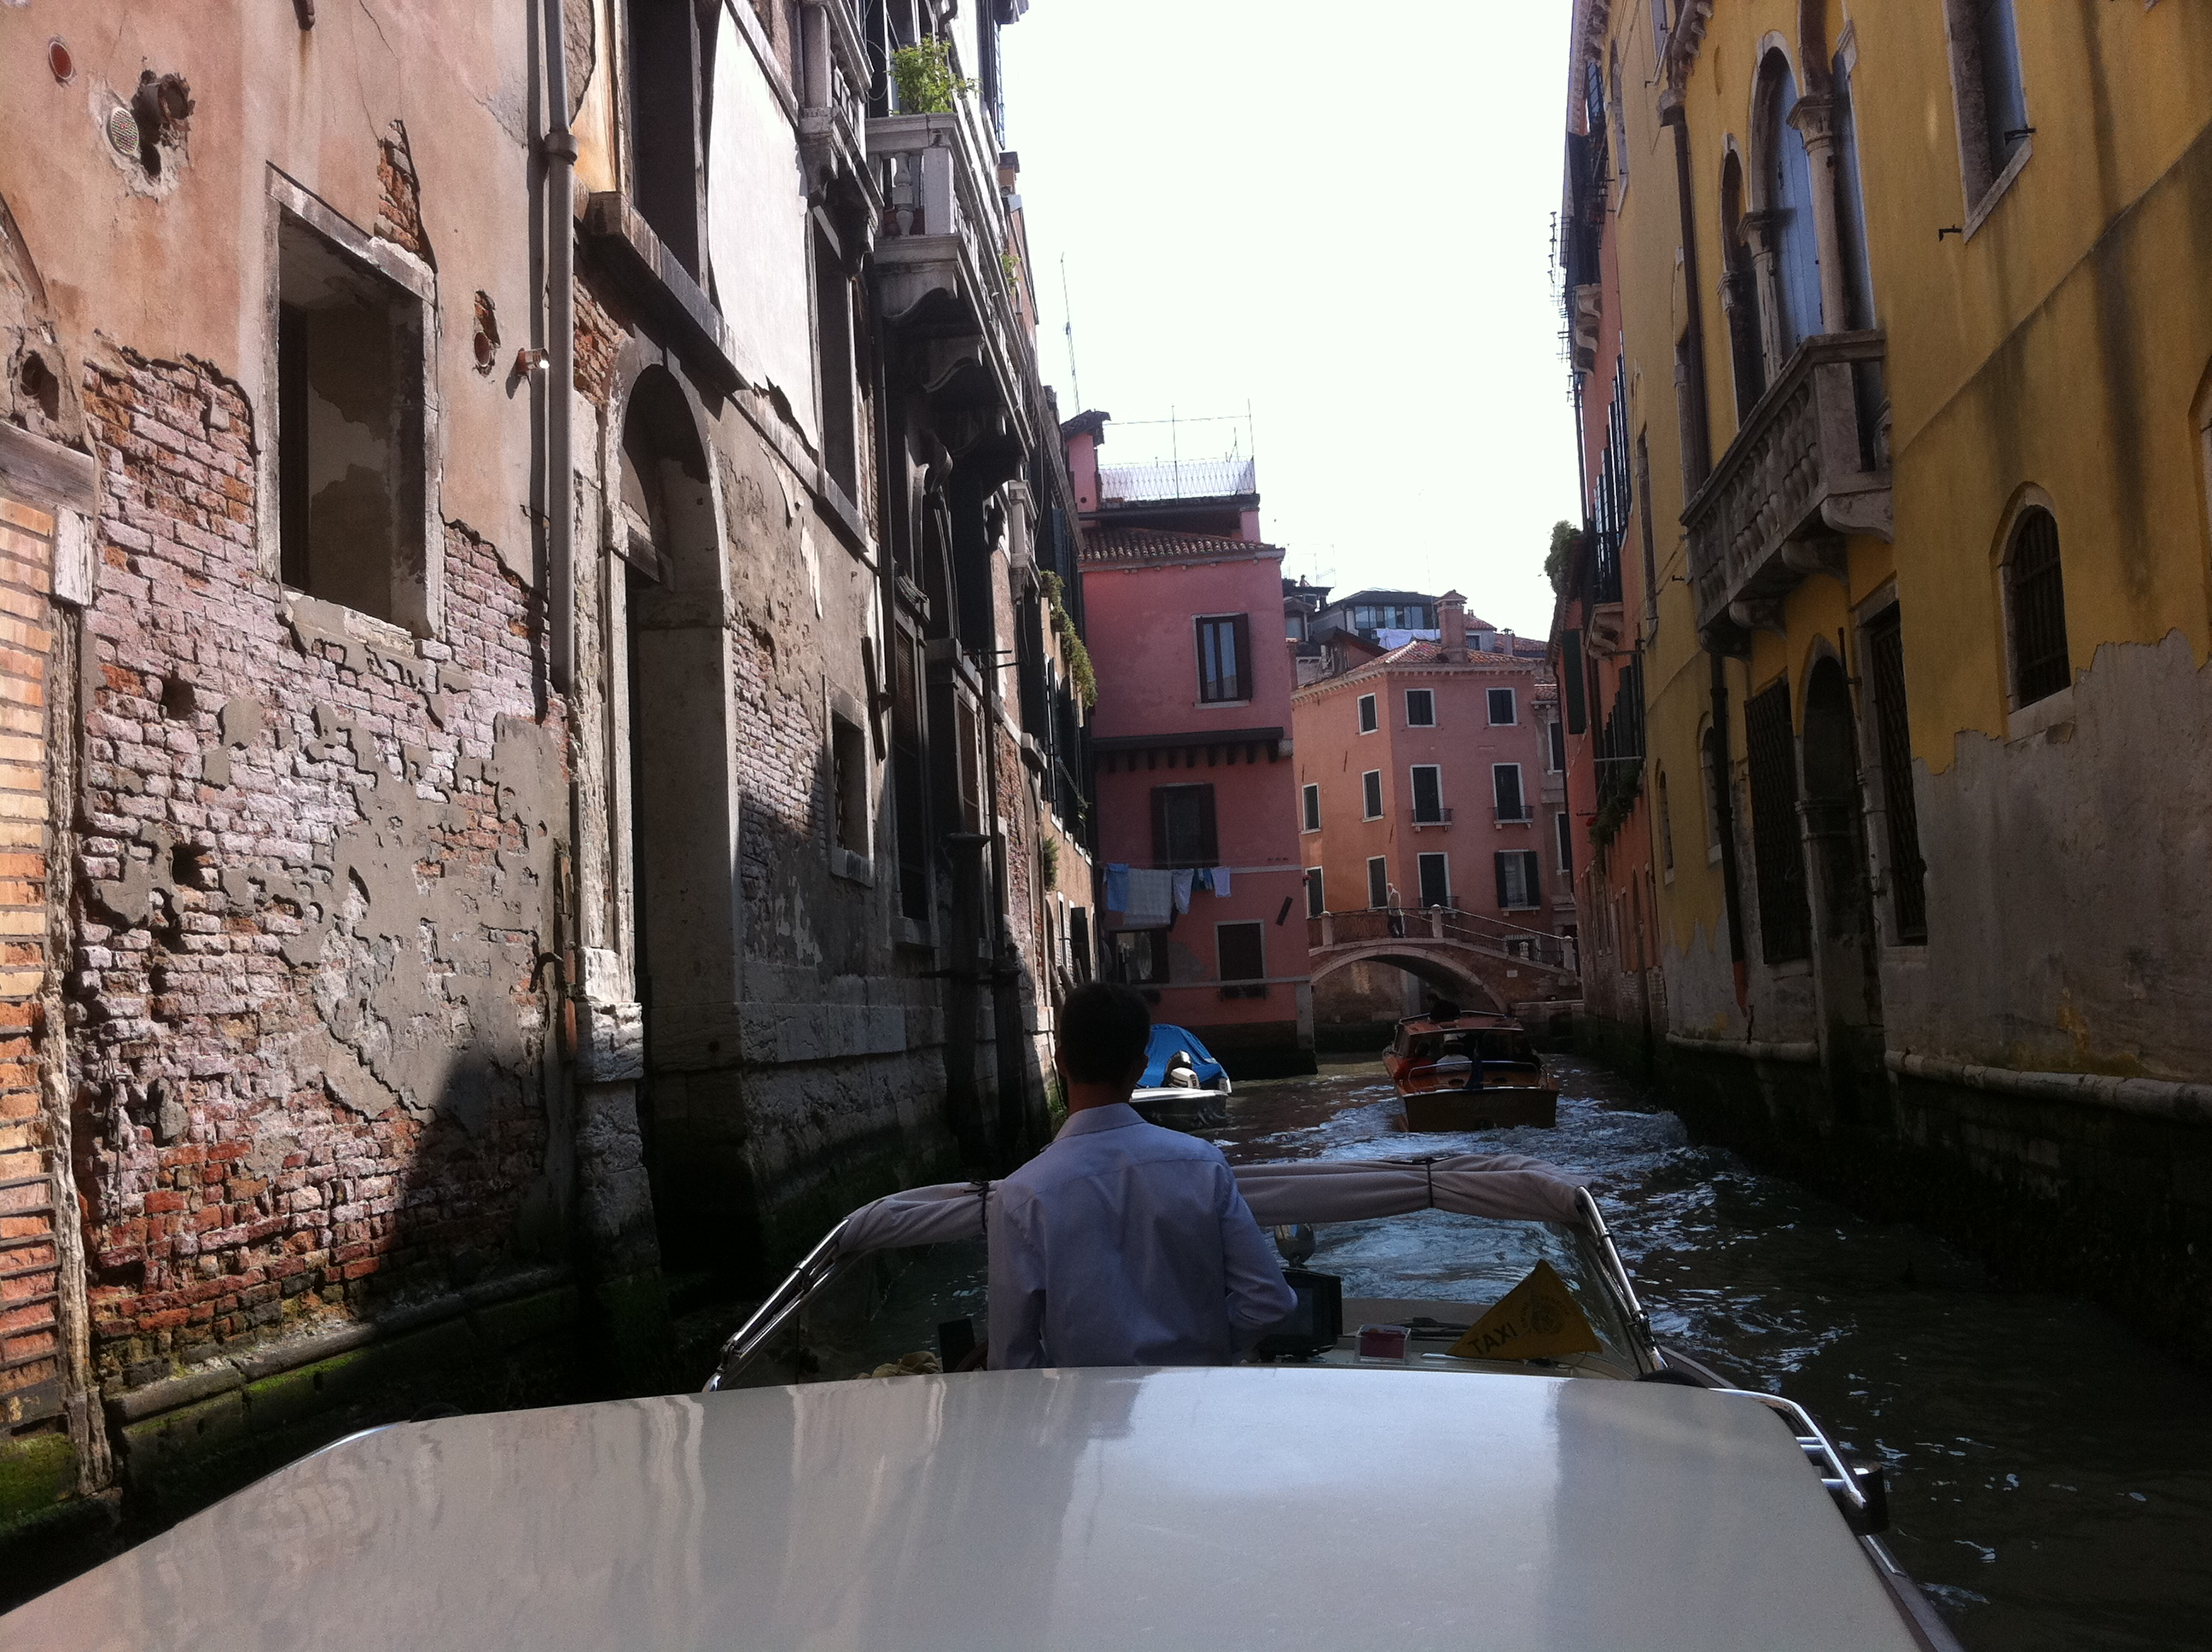 Cannaregio canals in Venice